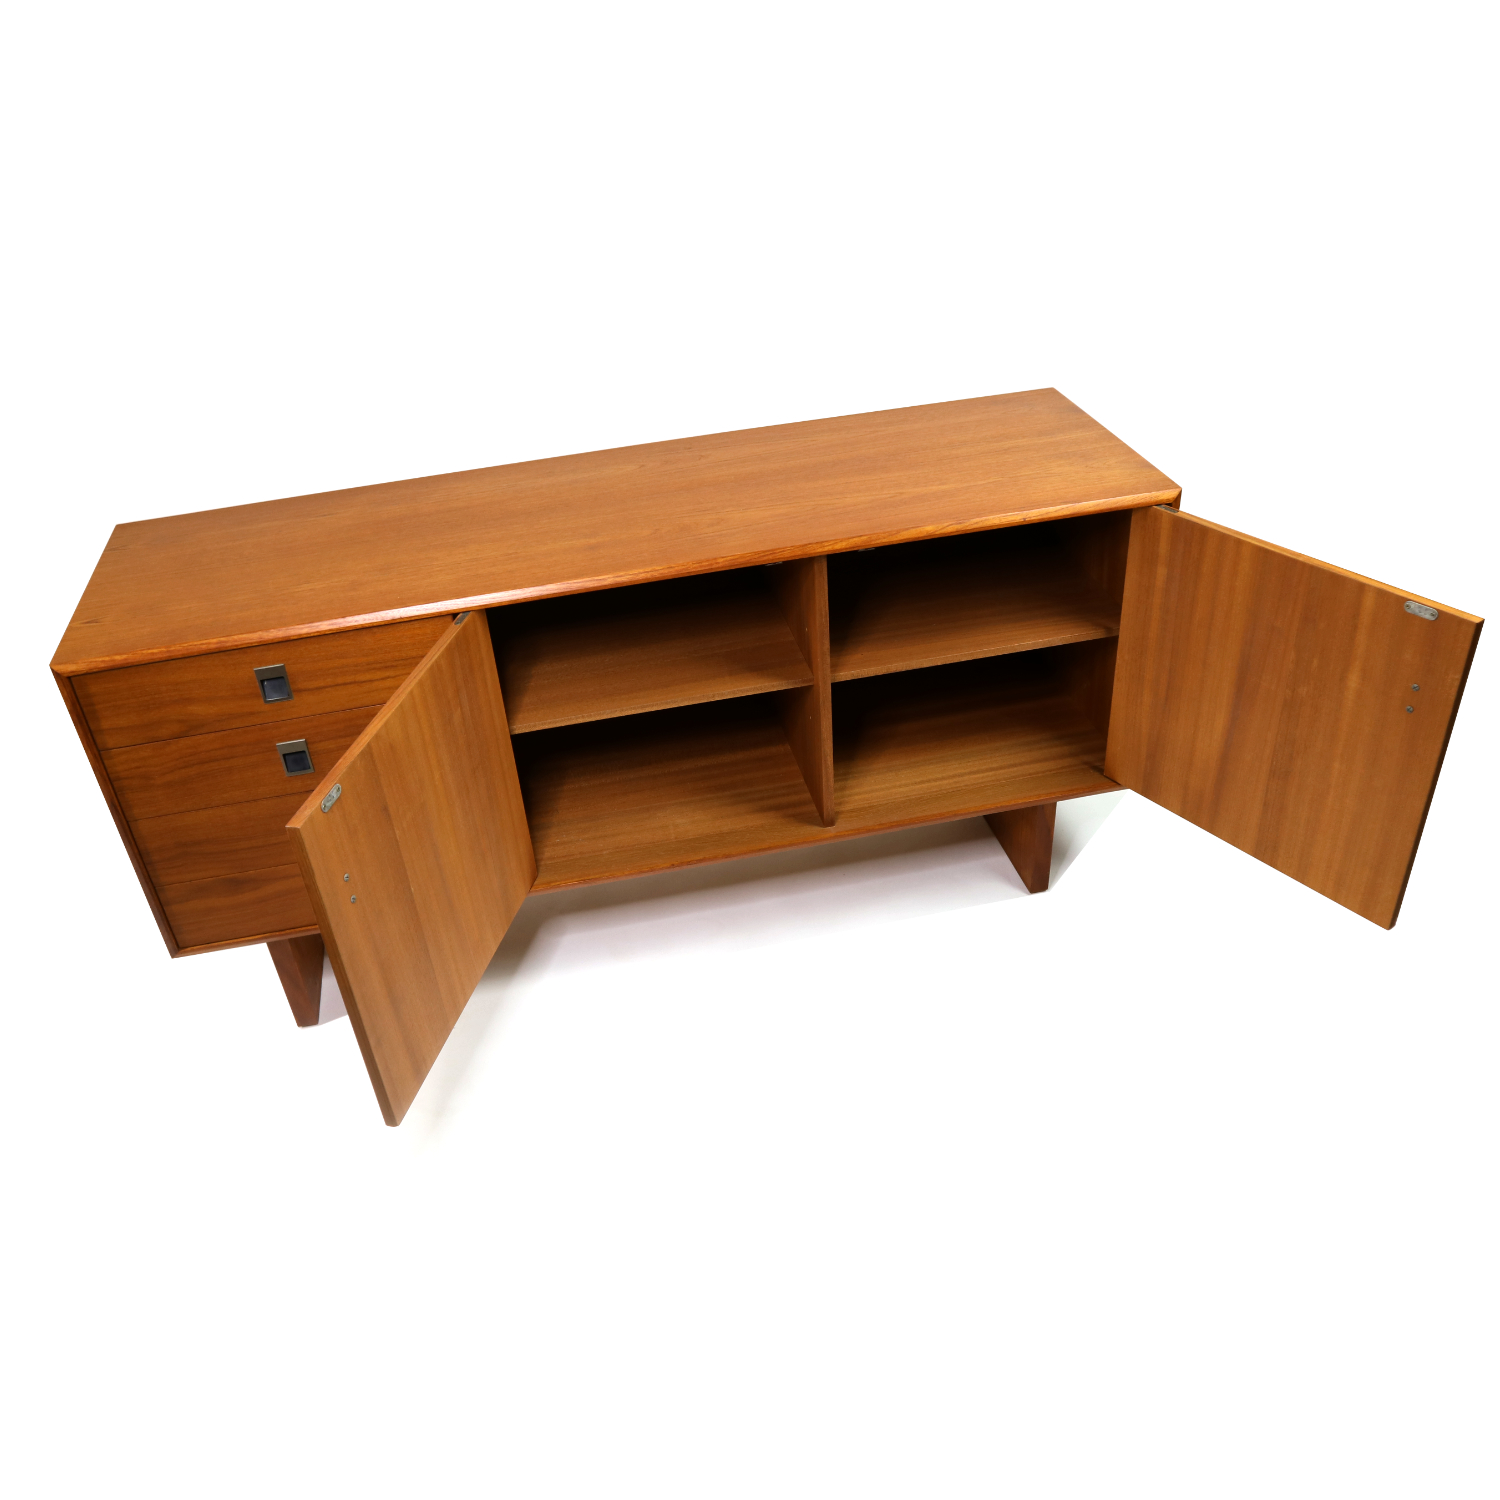 Image of: Mid Century Modern Teak Credenza Petite And Low Profile